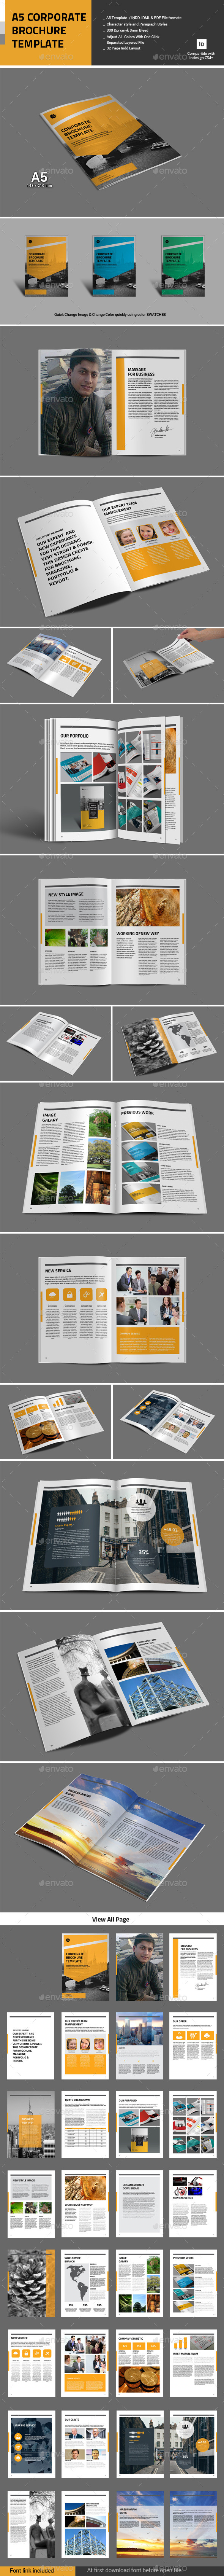 A5 Corporate Brochure Templage - Corporate Brochures